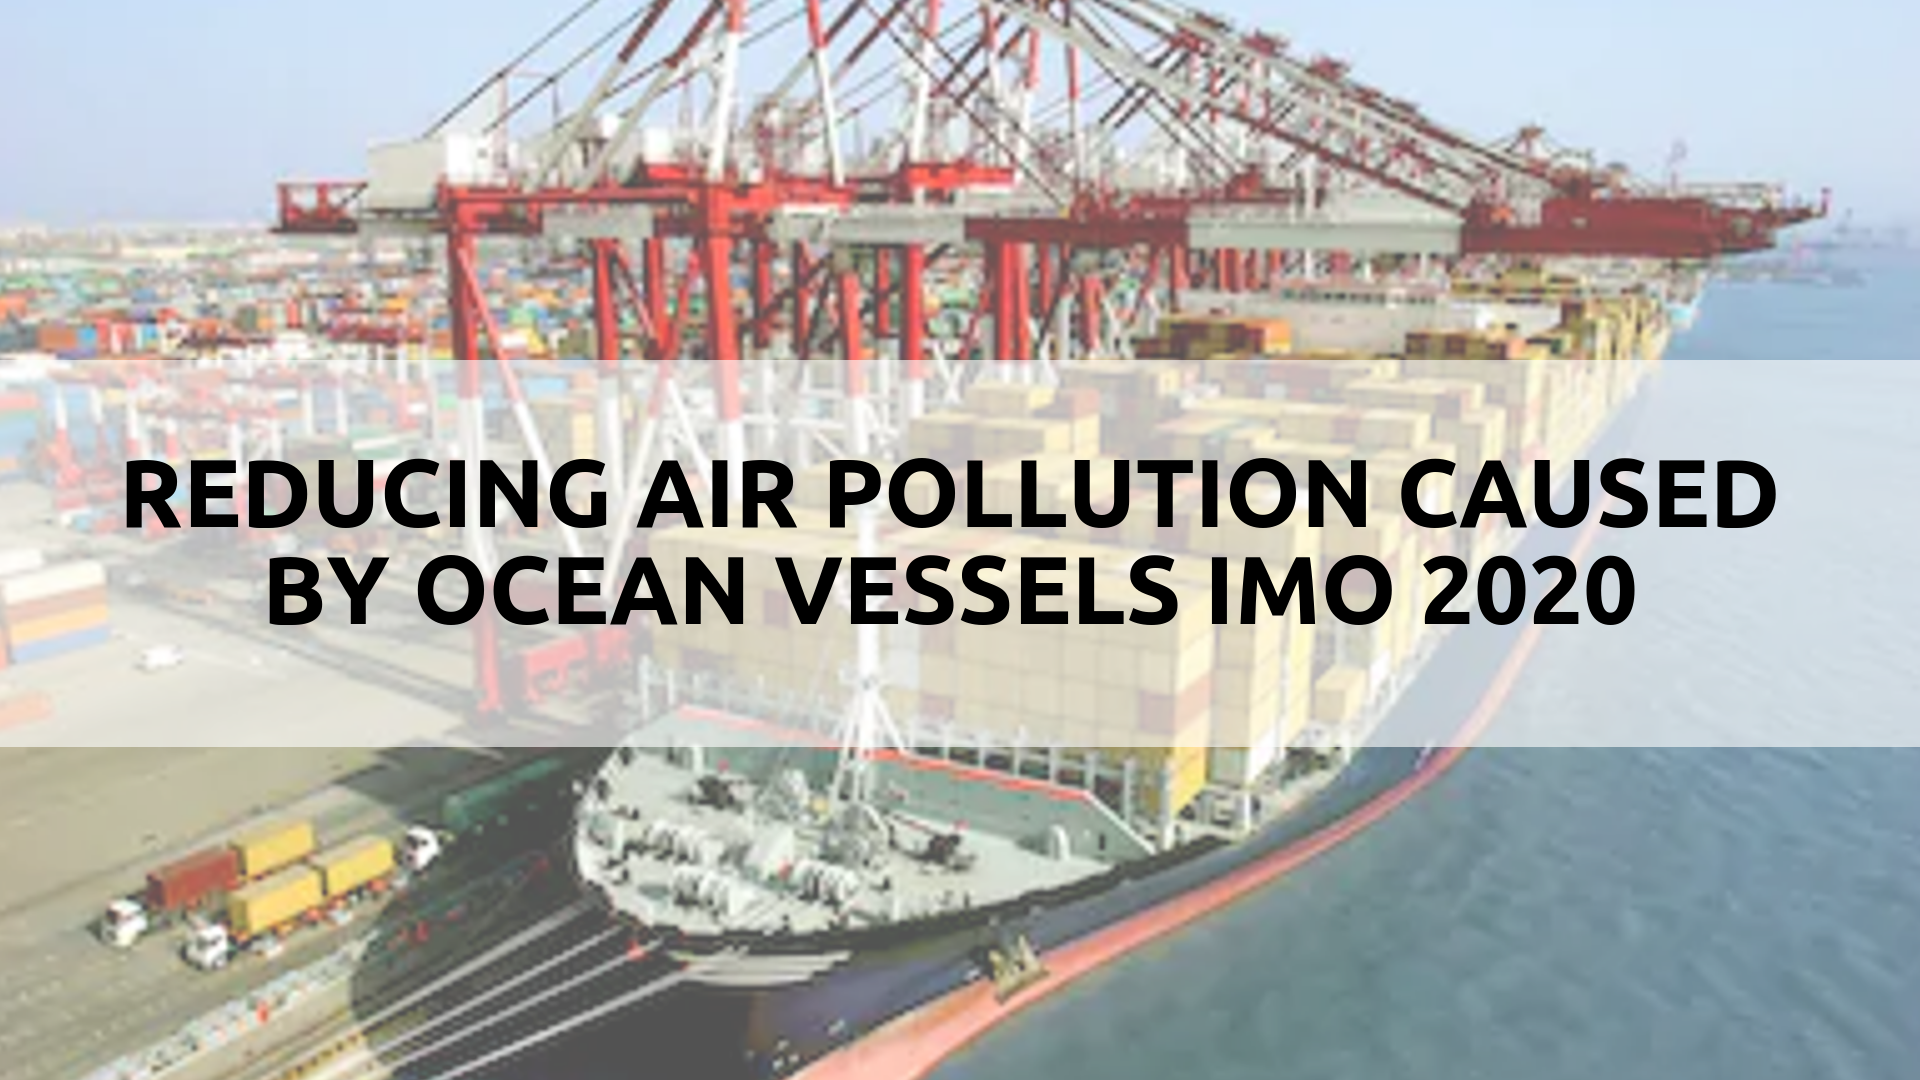 Reducing Air Pollution caused by Ocean Vessels IMO 2020